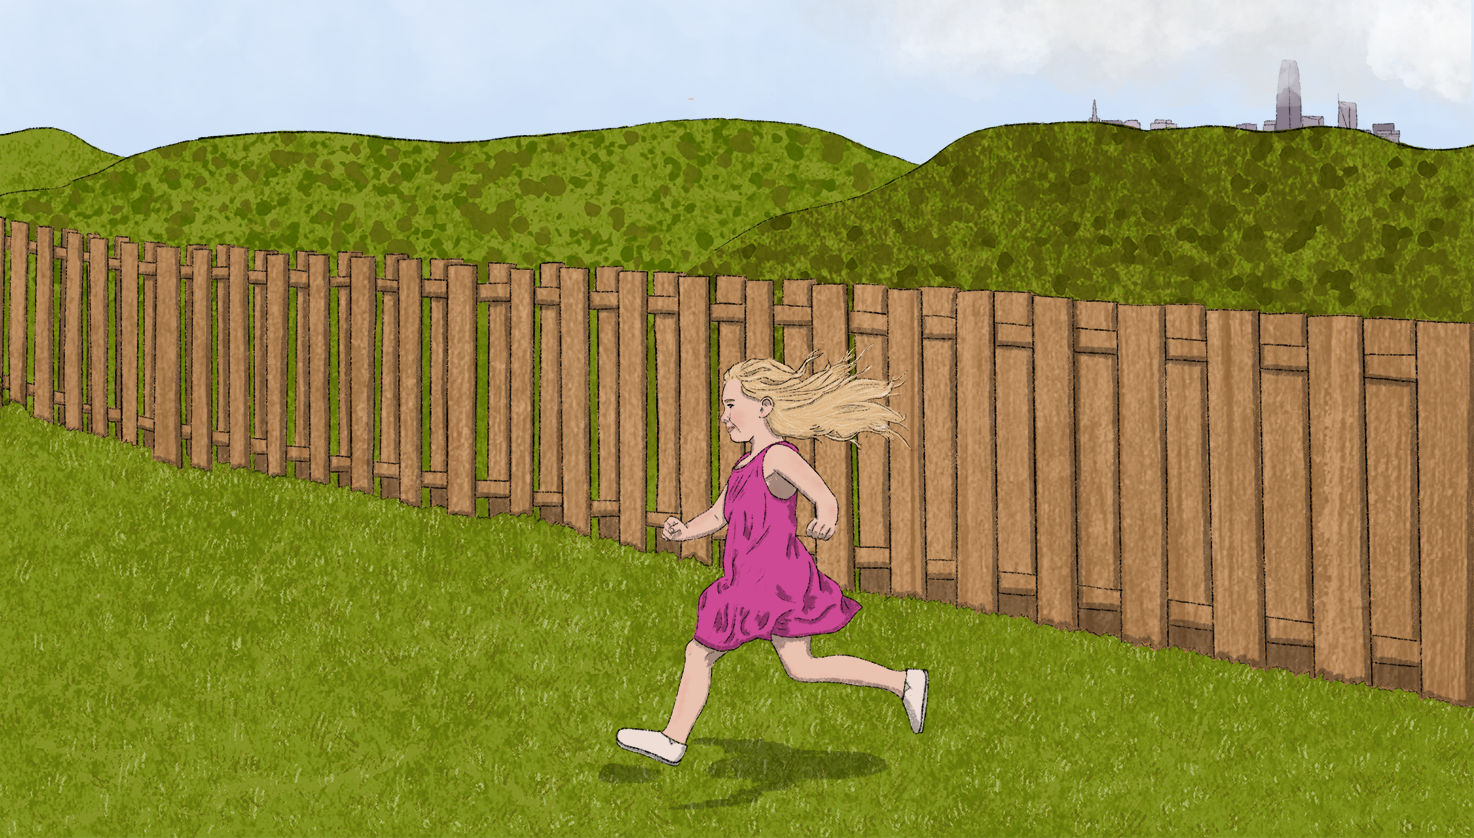 Illustration of a child running in a fenced-in backyard, the San Francisco skyline visible in the far distance.